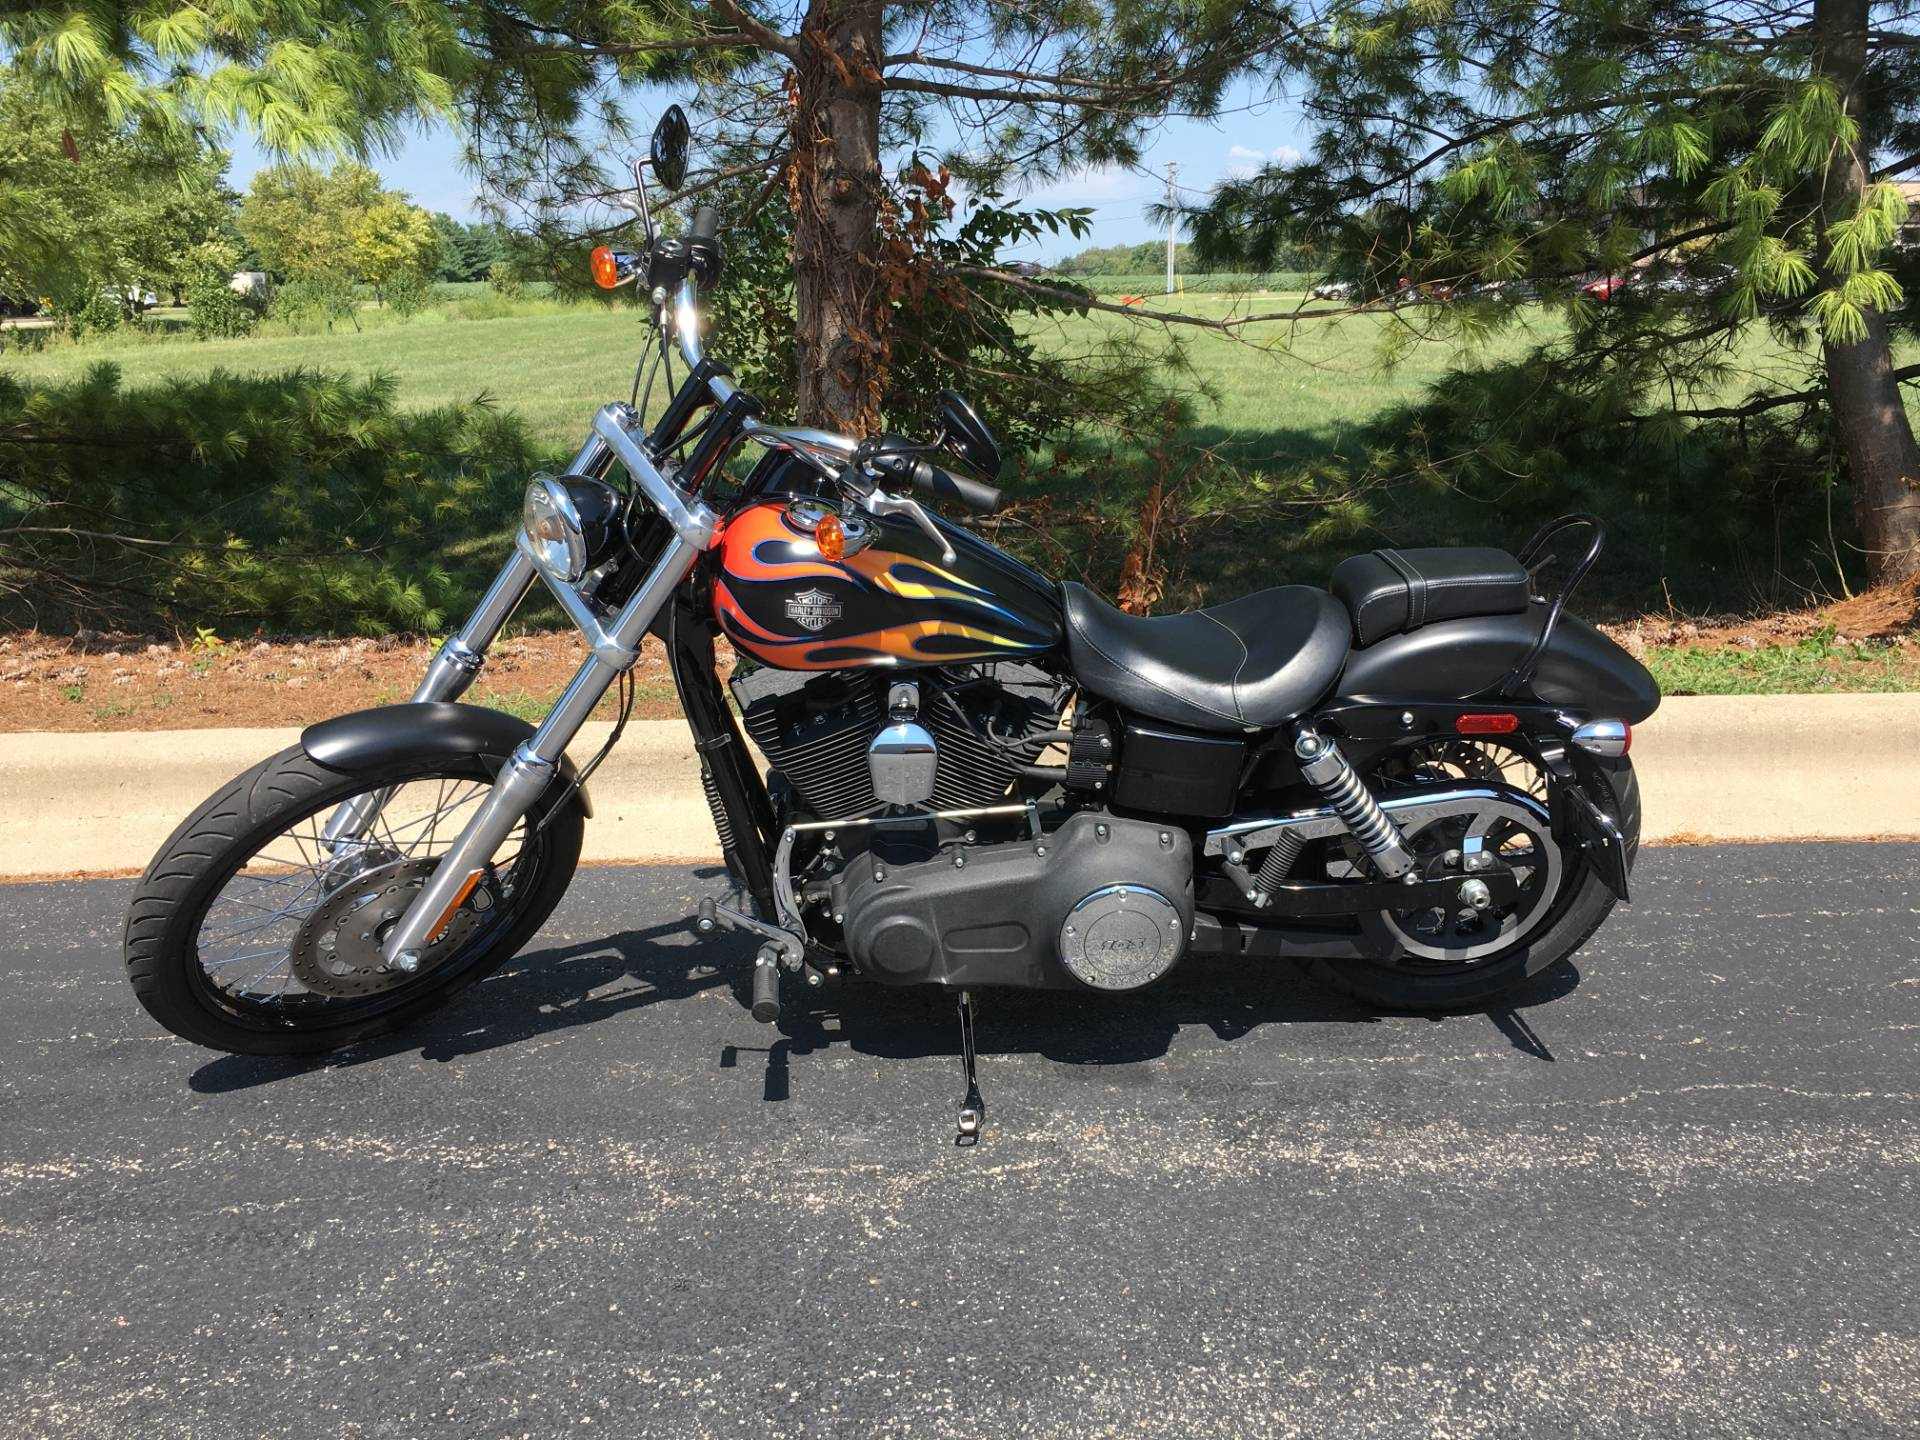 2015 Harley-Davidson Wide Glide in Forsyth, Illinois